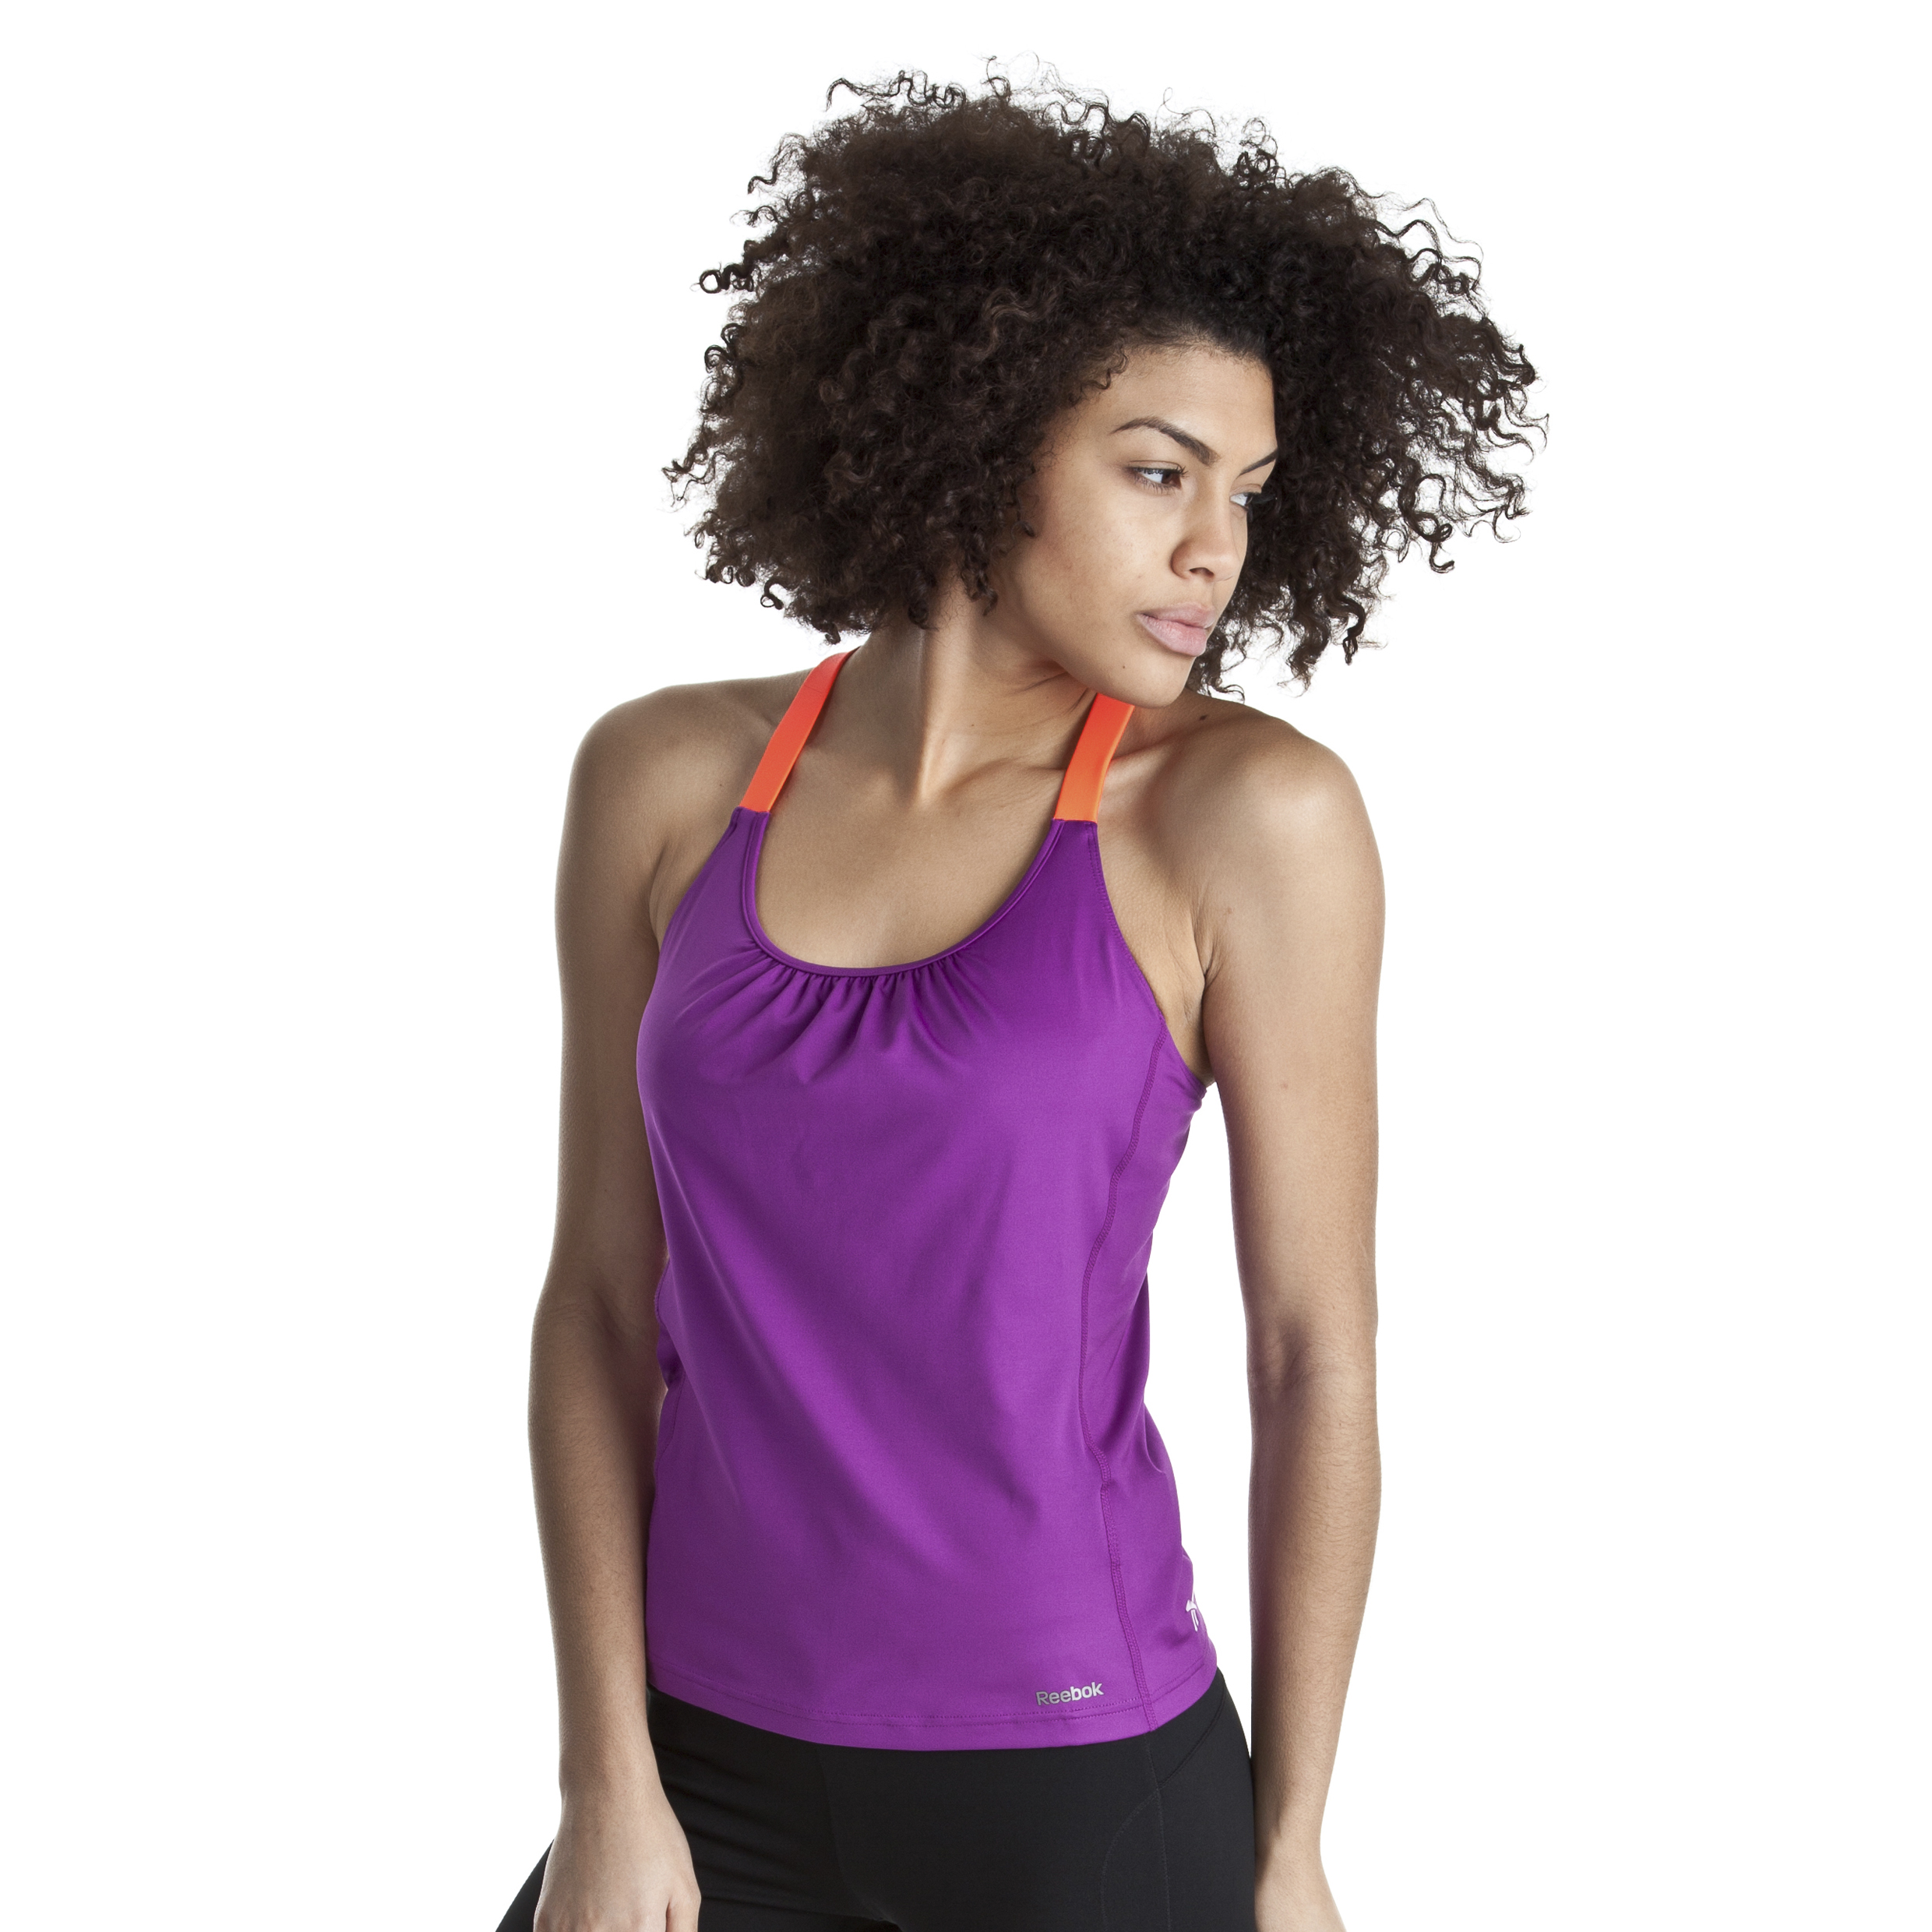 Reebok Strappy Long Bra Top With Rushing - Aubergine/Vitamin C - Women